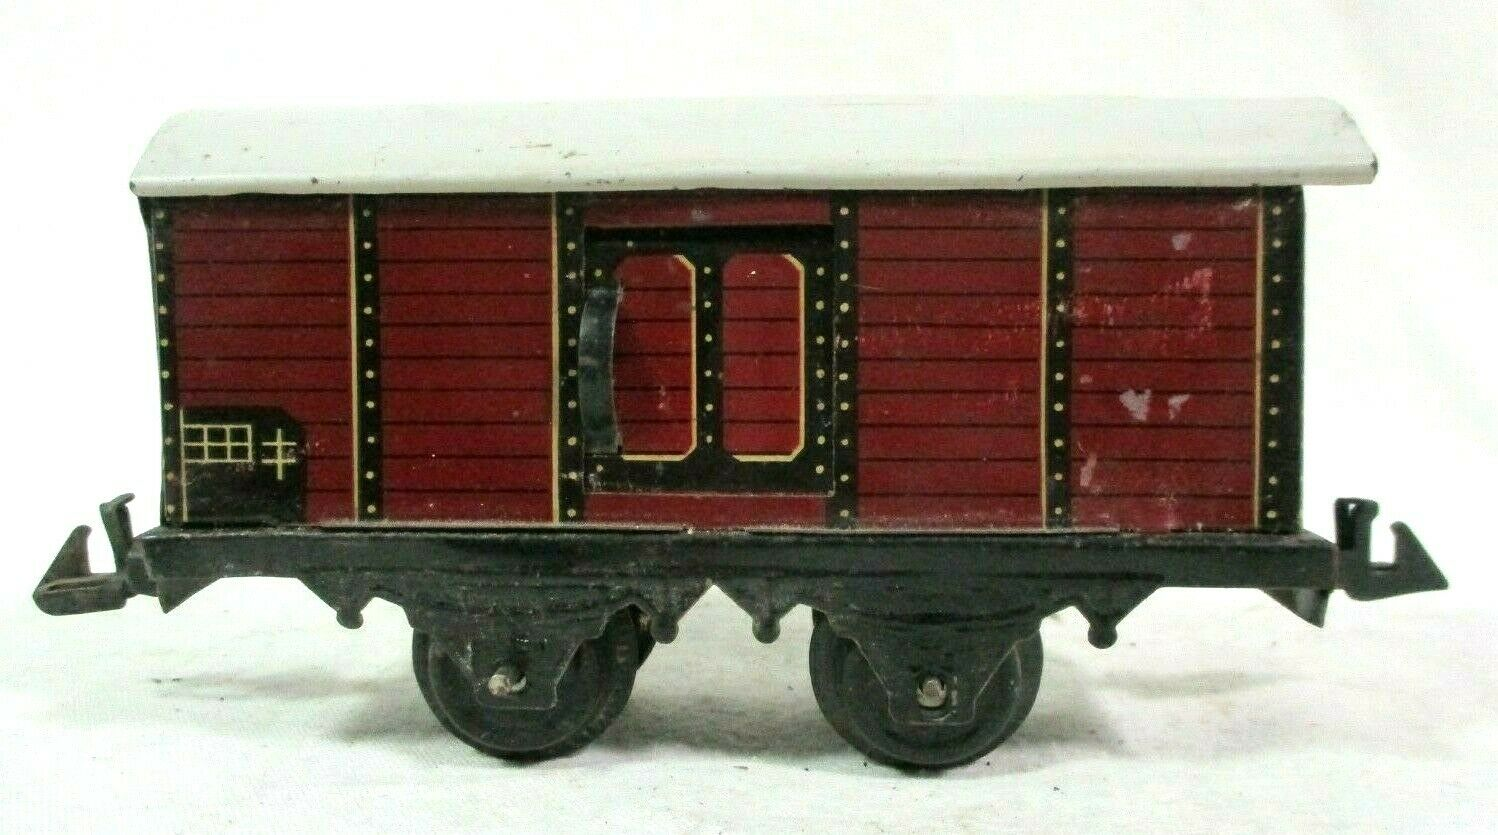 Bing 67 O Gauge Covered Wagon Model Railway Freight Train B66-43